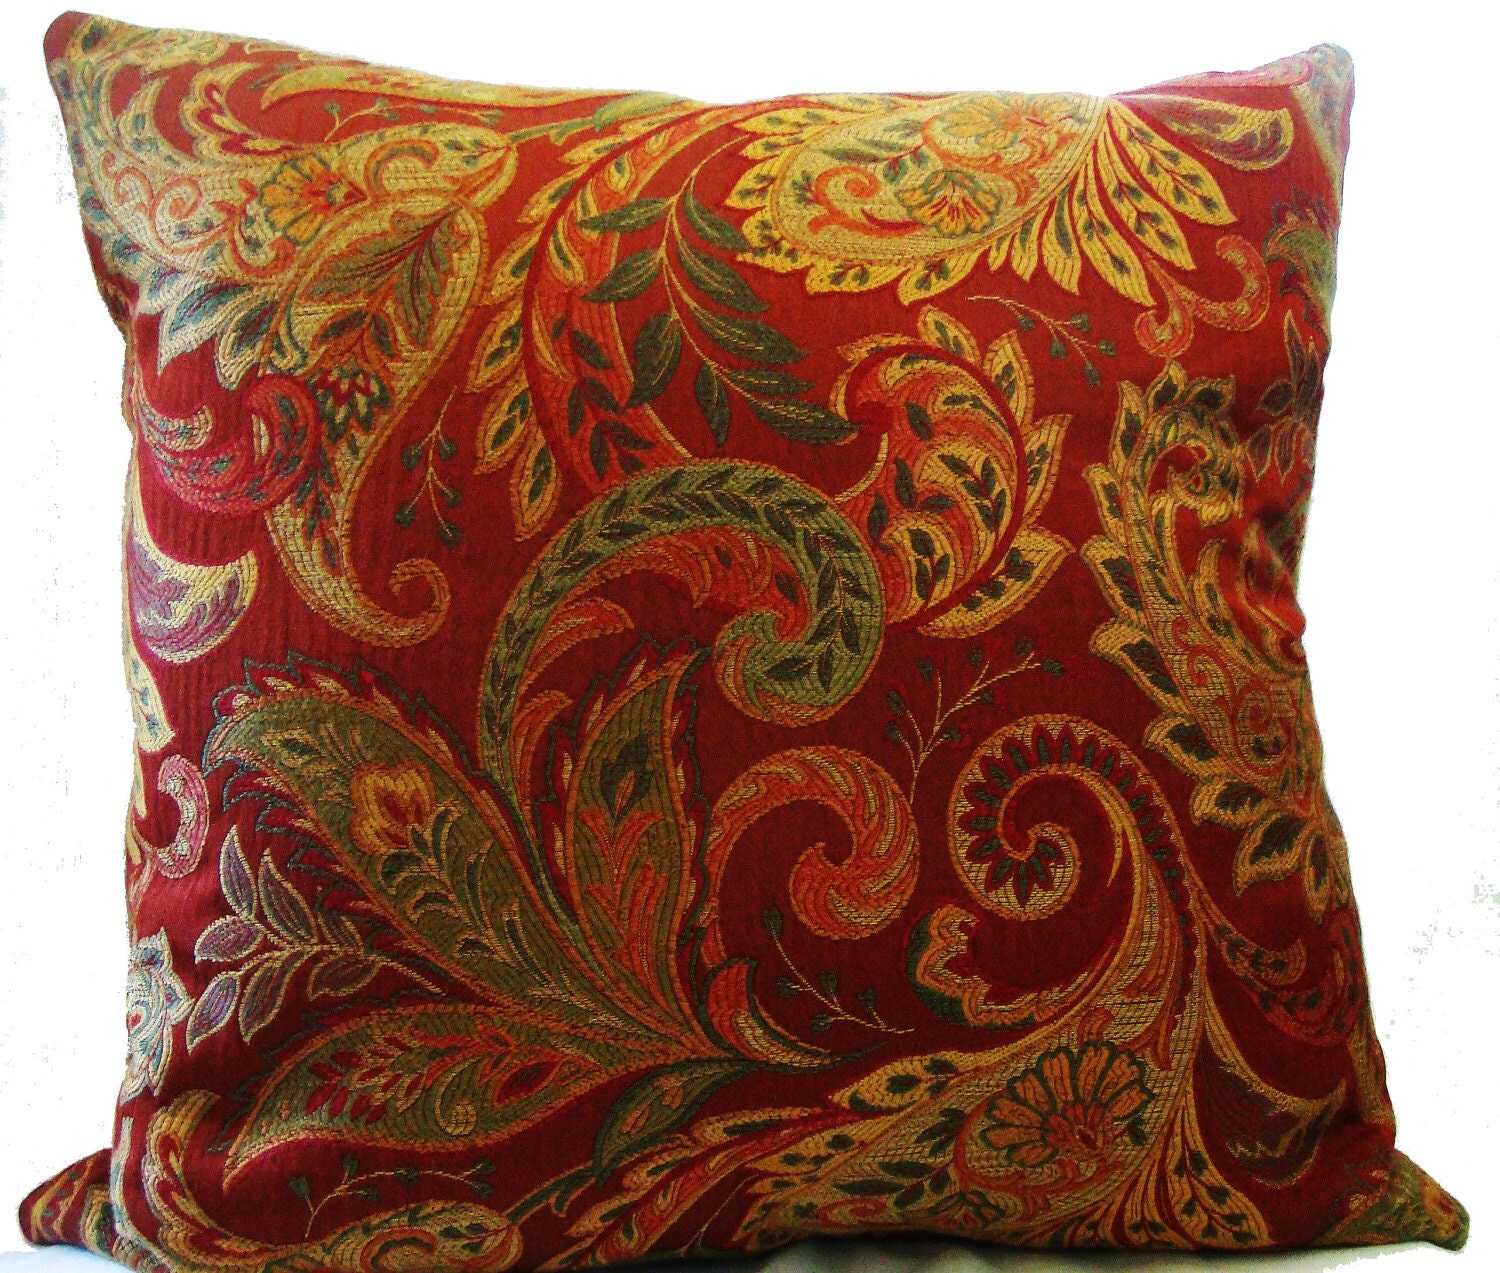 beautiful woven jacquard paisley throw pillow20x20 decorative. Black Bedroom Furniture Sets. Home Design Ideas